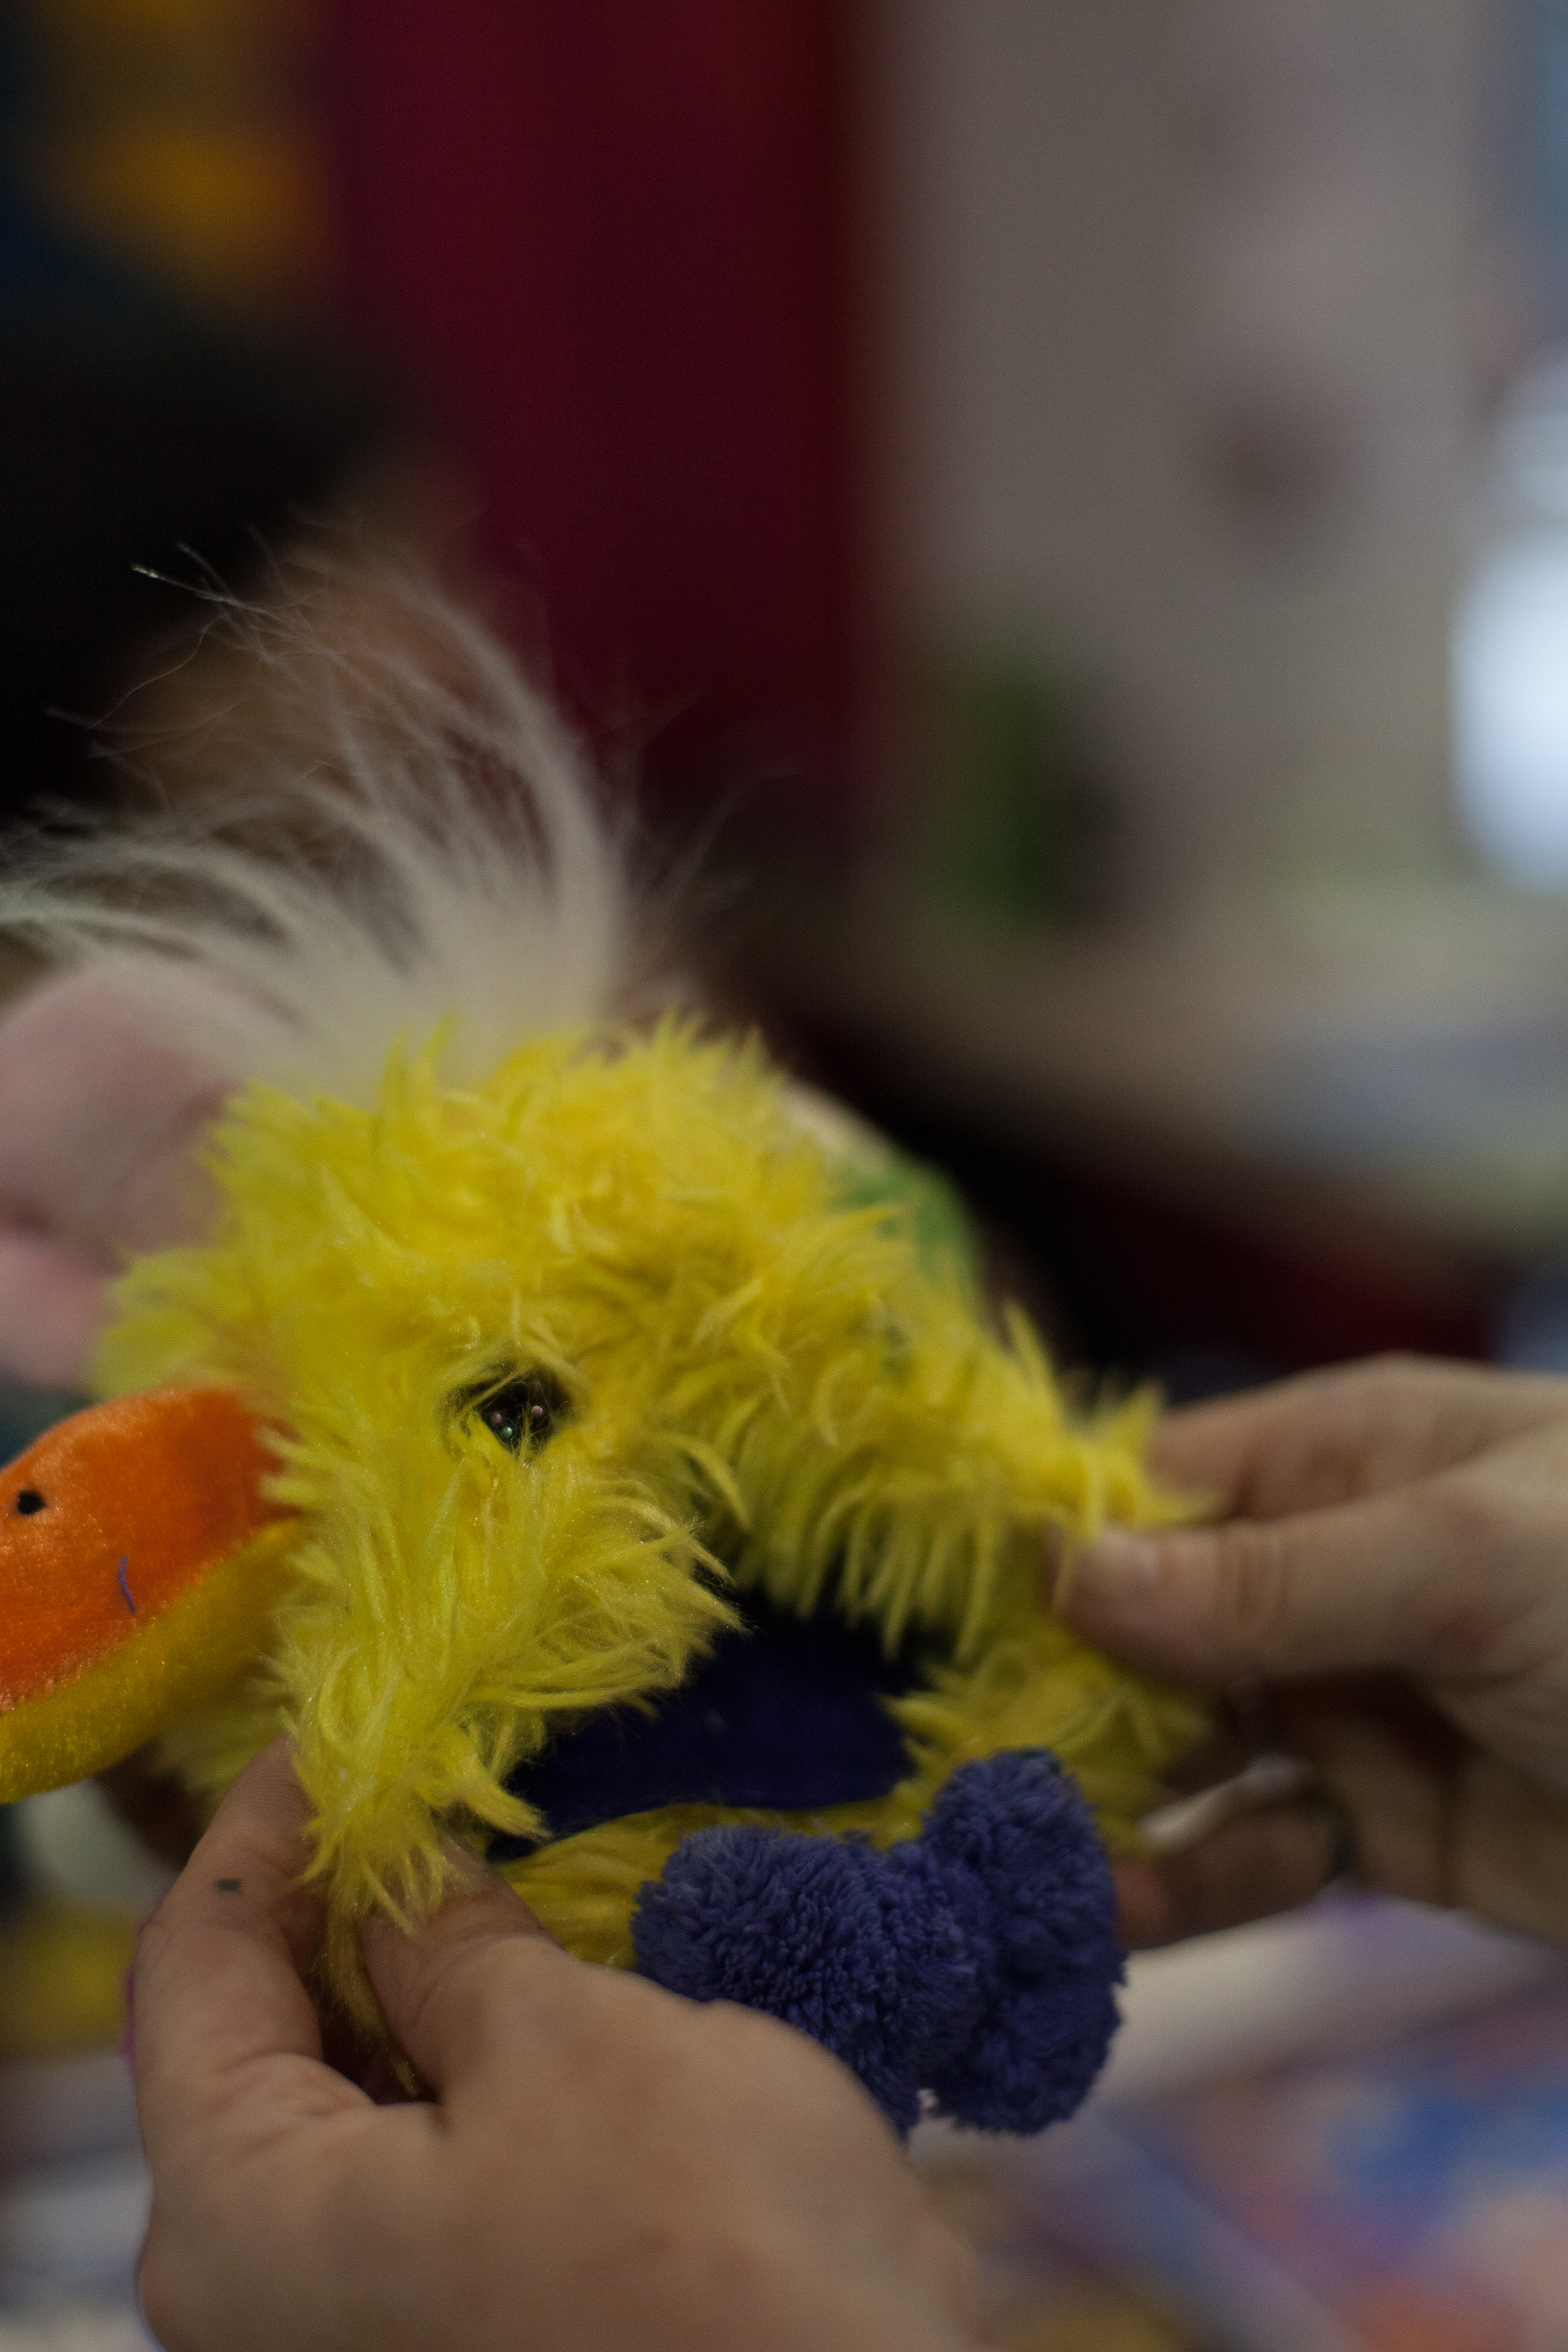 Make your own lil' monster...muppets, puppets & marionettes...reloved, reclaimed, reinvented.